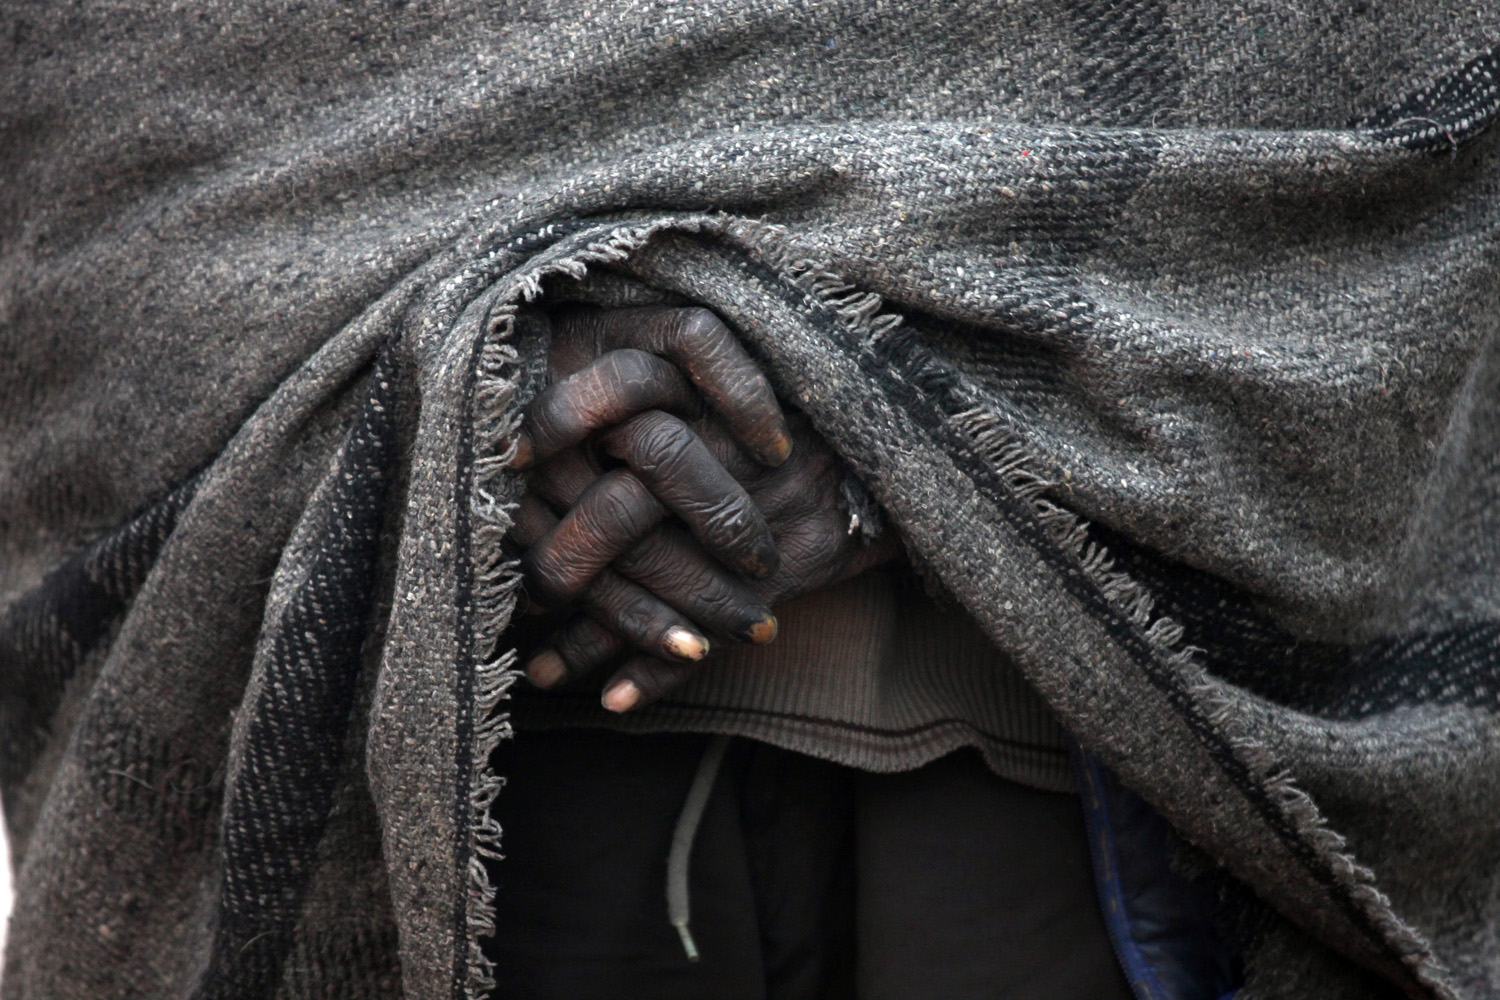 Dec. 30, 2013. An Indian daily wage laborer wrapped in a blanket warms himself near a fire (unseen) on a cold morning in Amritsar, India.